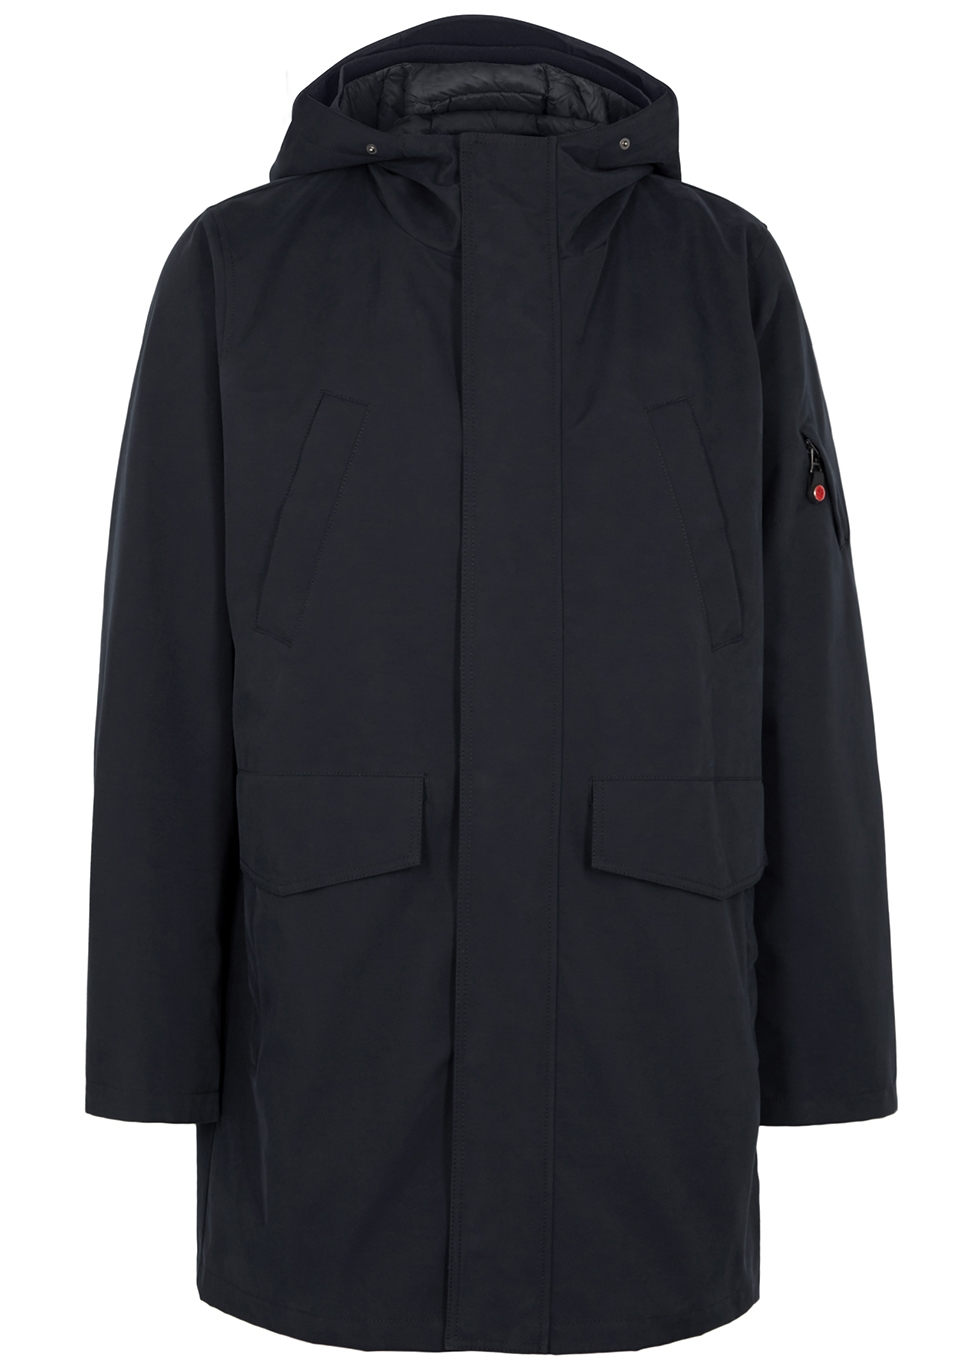 49 WINTERS The Parka Navy Cotton-Blend Twill Coat